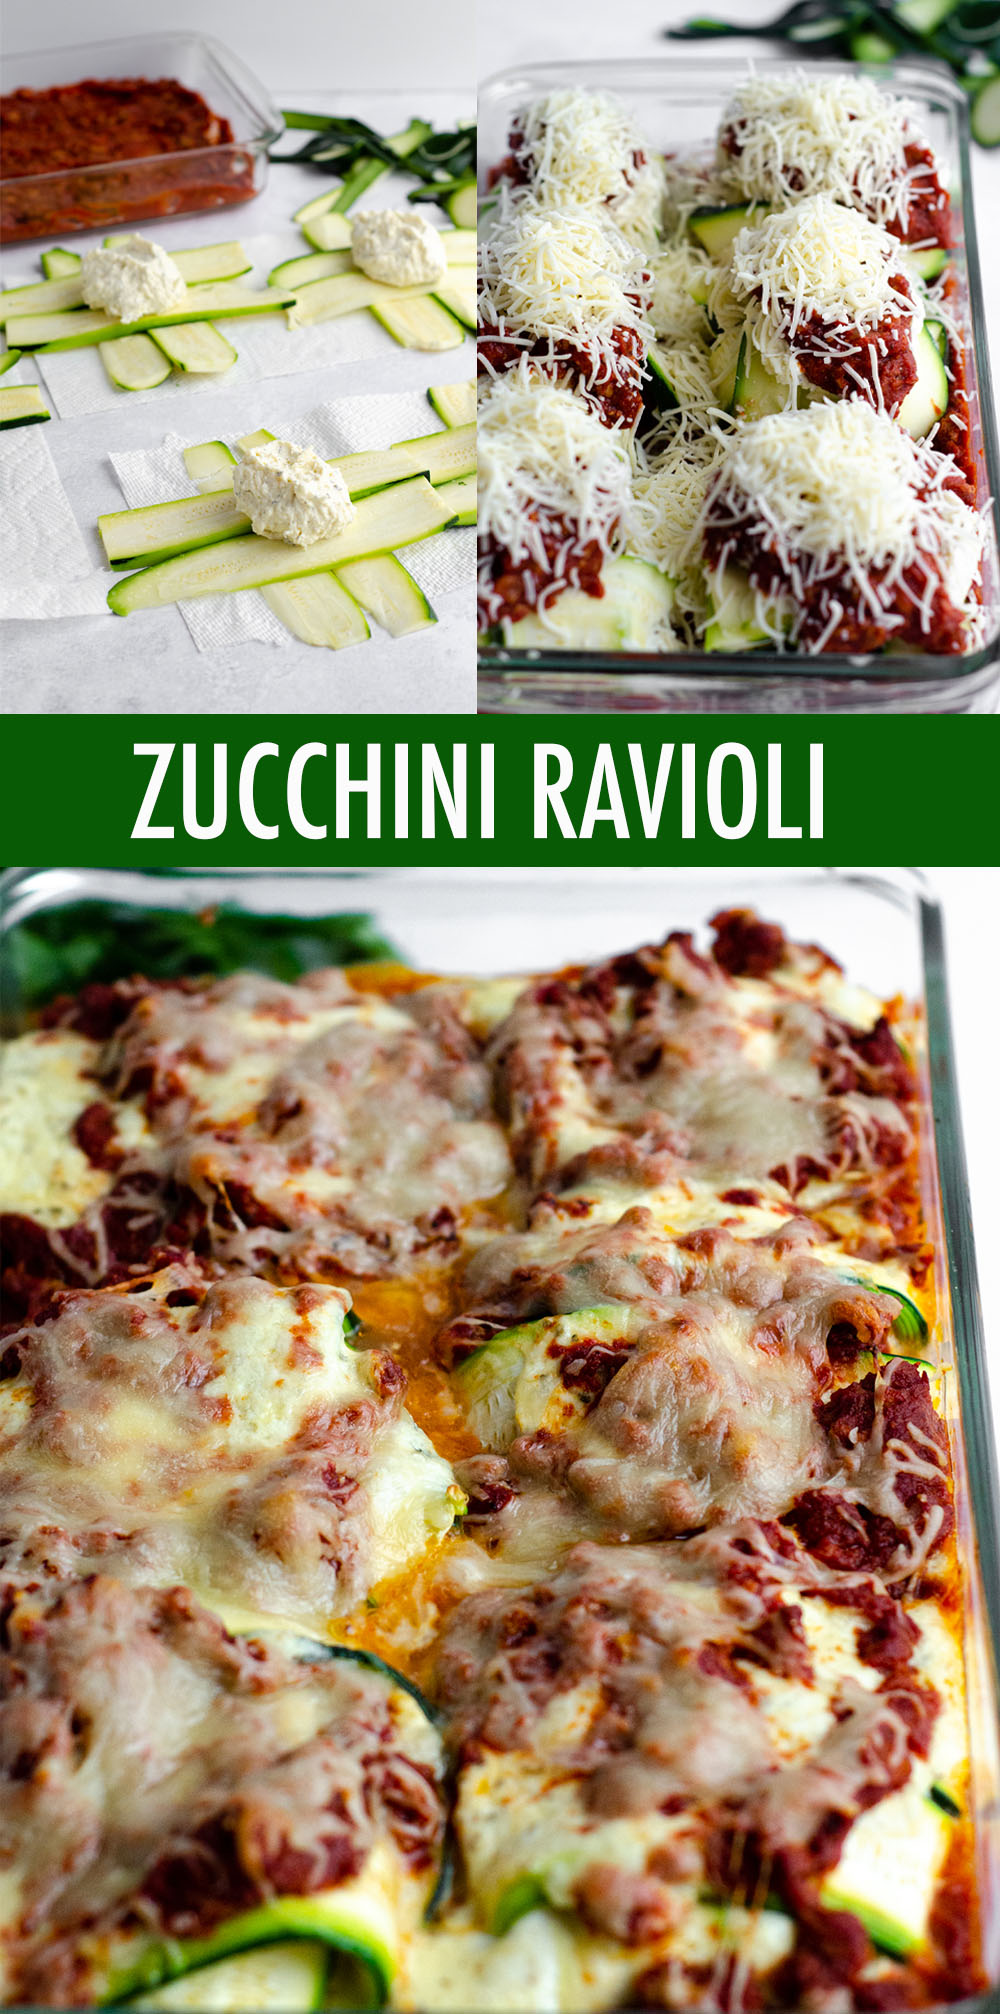 Traditional ravioli get a vegetable makeover-- use zucchini in place of pasta for a gluten free, keto, or low carb ravioli substitute. These simple zucchini ravioli bring all the flavor and filling without the noodles!